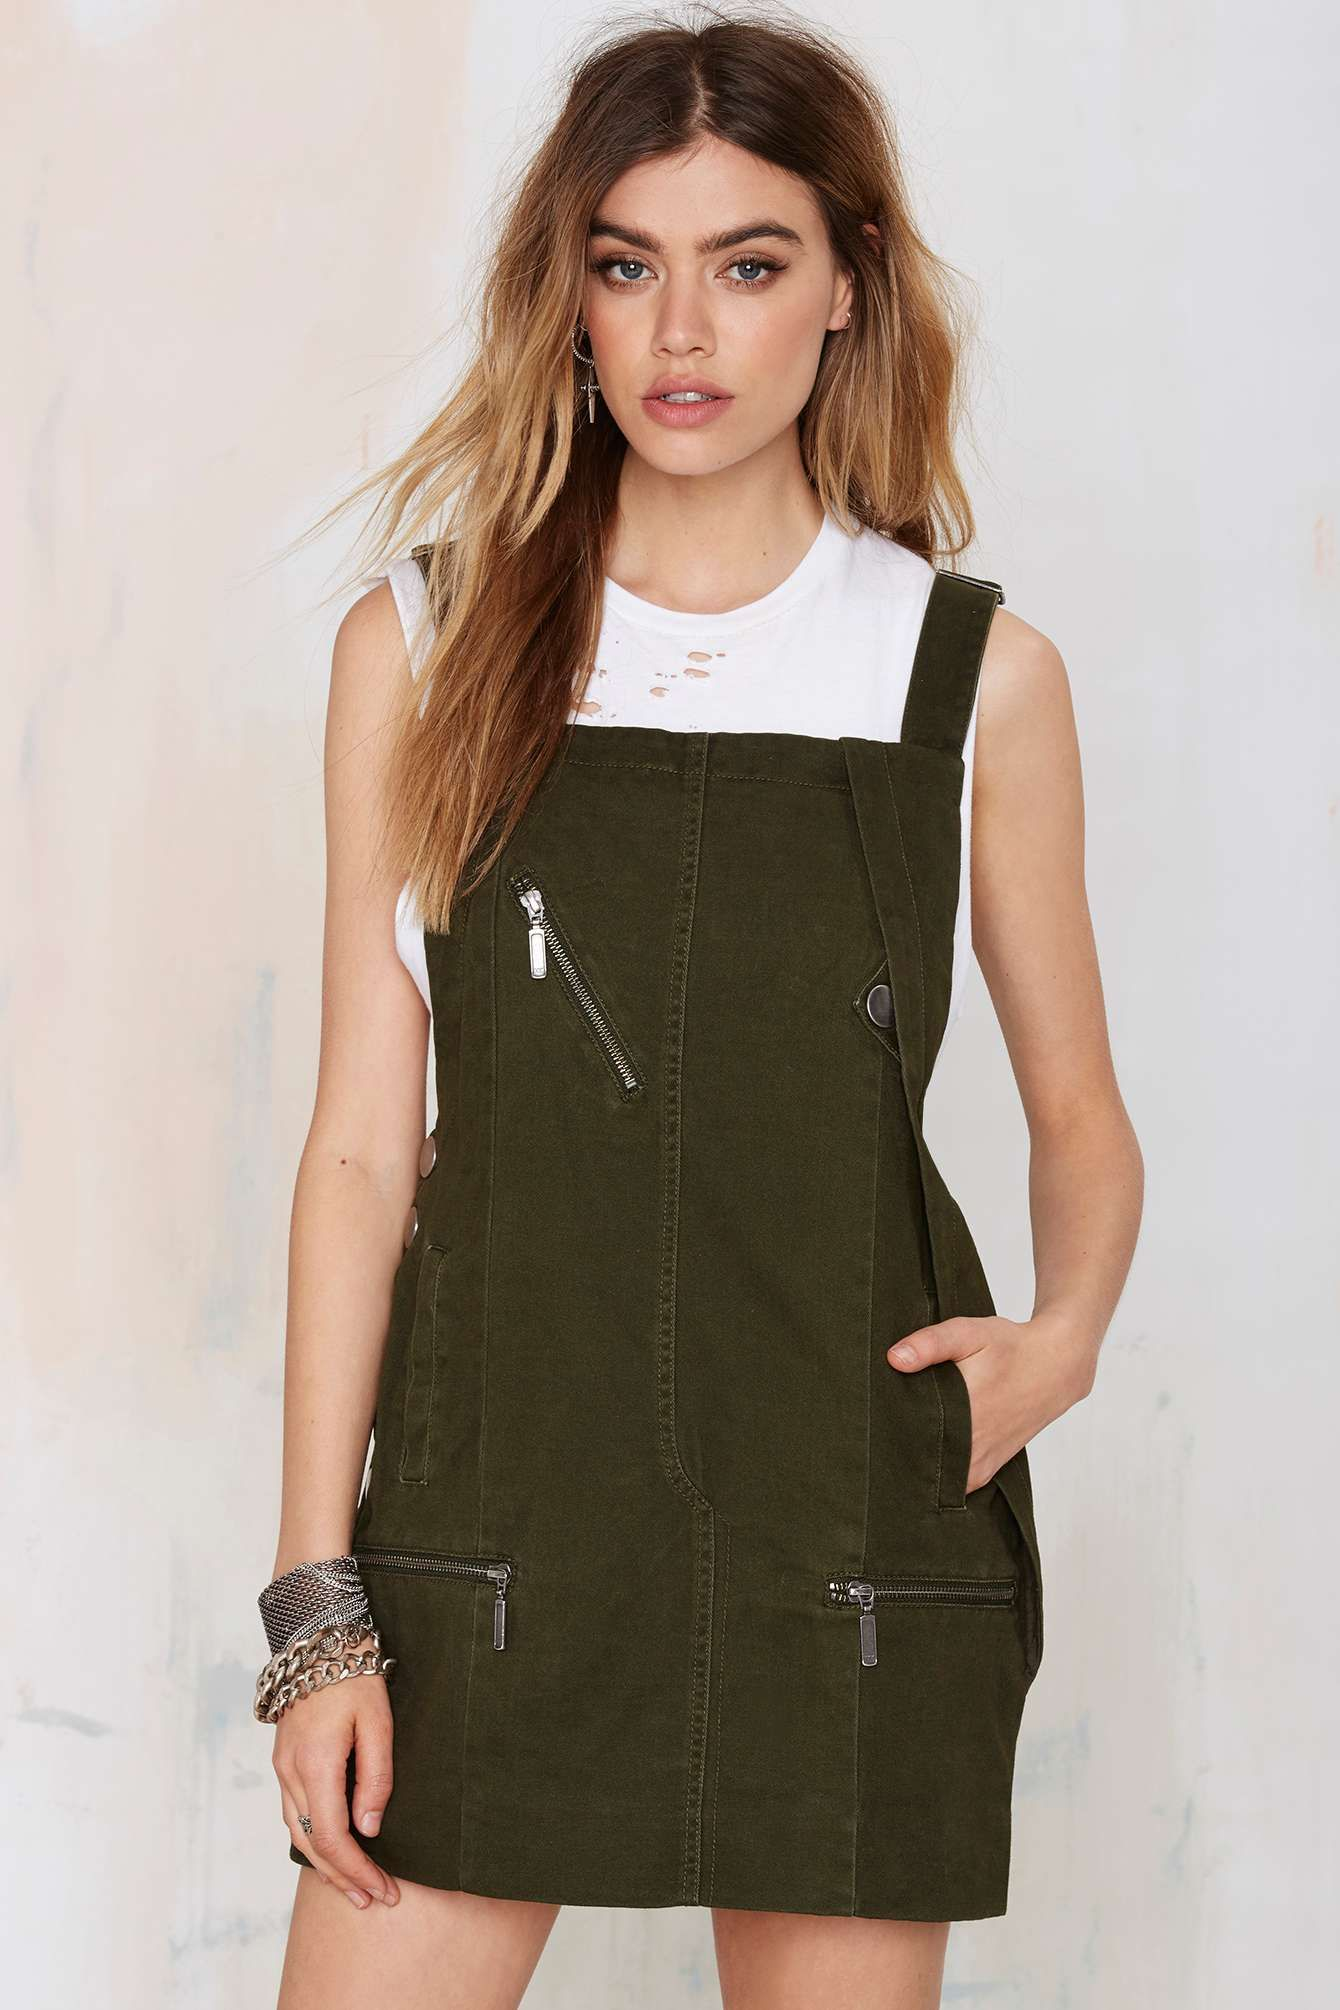 Nasty gal army of one overall dress shop clothes at nasty gal